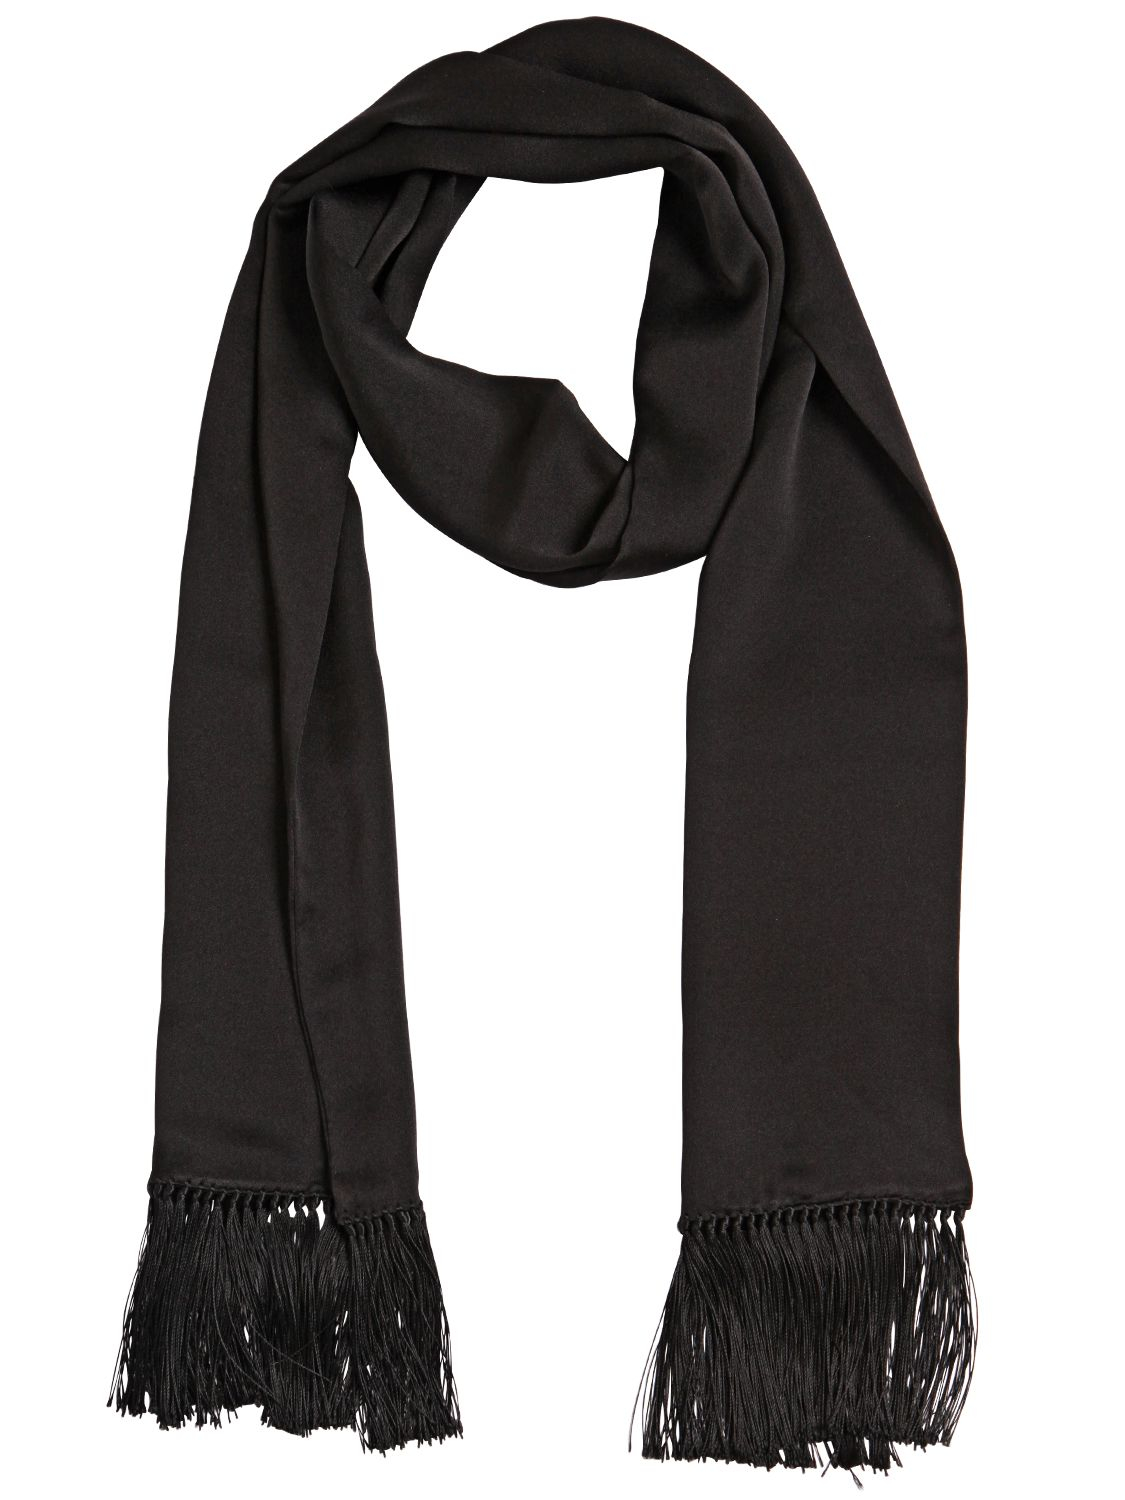 e01c6060969e saint-laurent-black-fringed-silk-satin-long-scarf-product-1-837587493-normal.jpeg